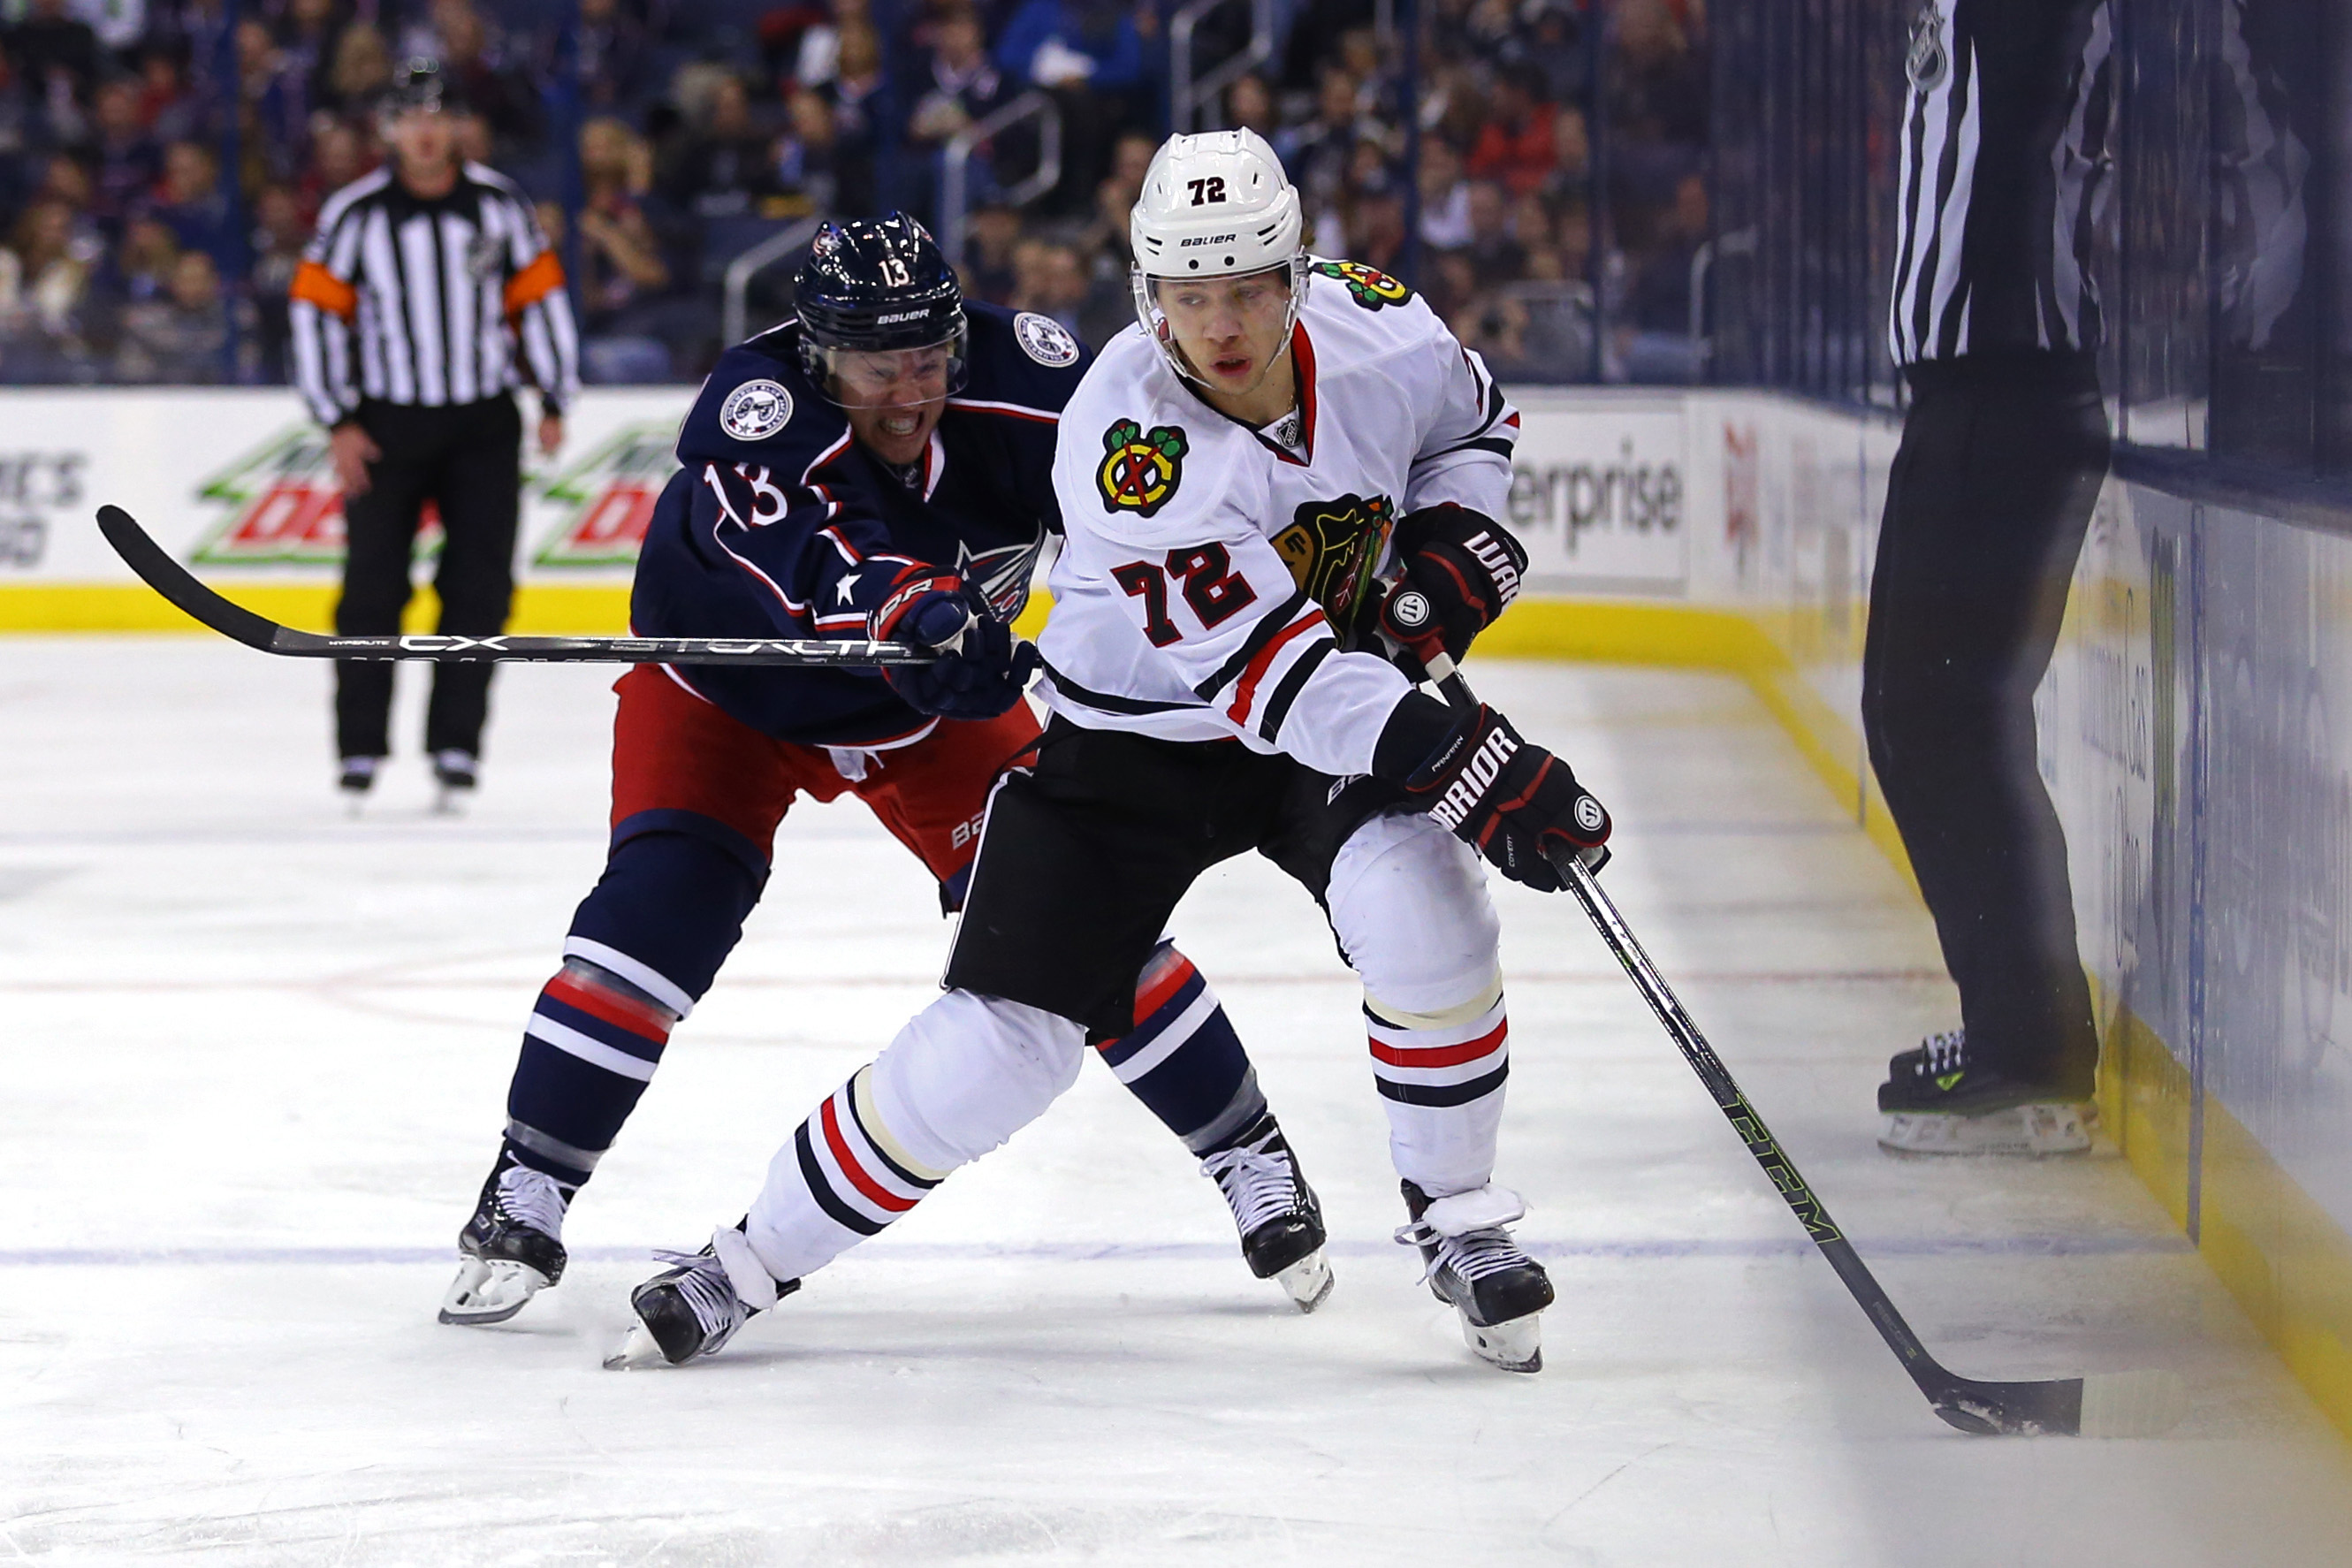 9623492-nhl-chicago-blackhawks-at-columbus-blue-jackets